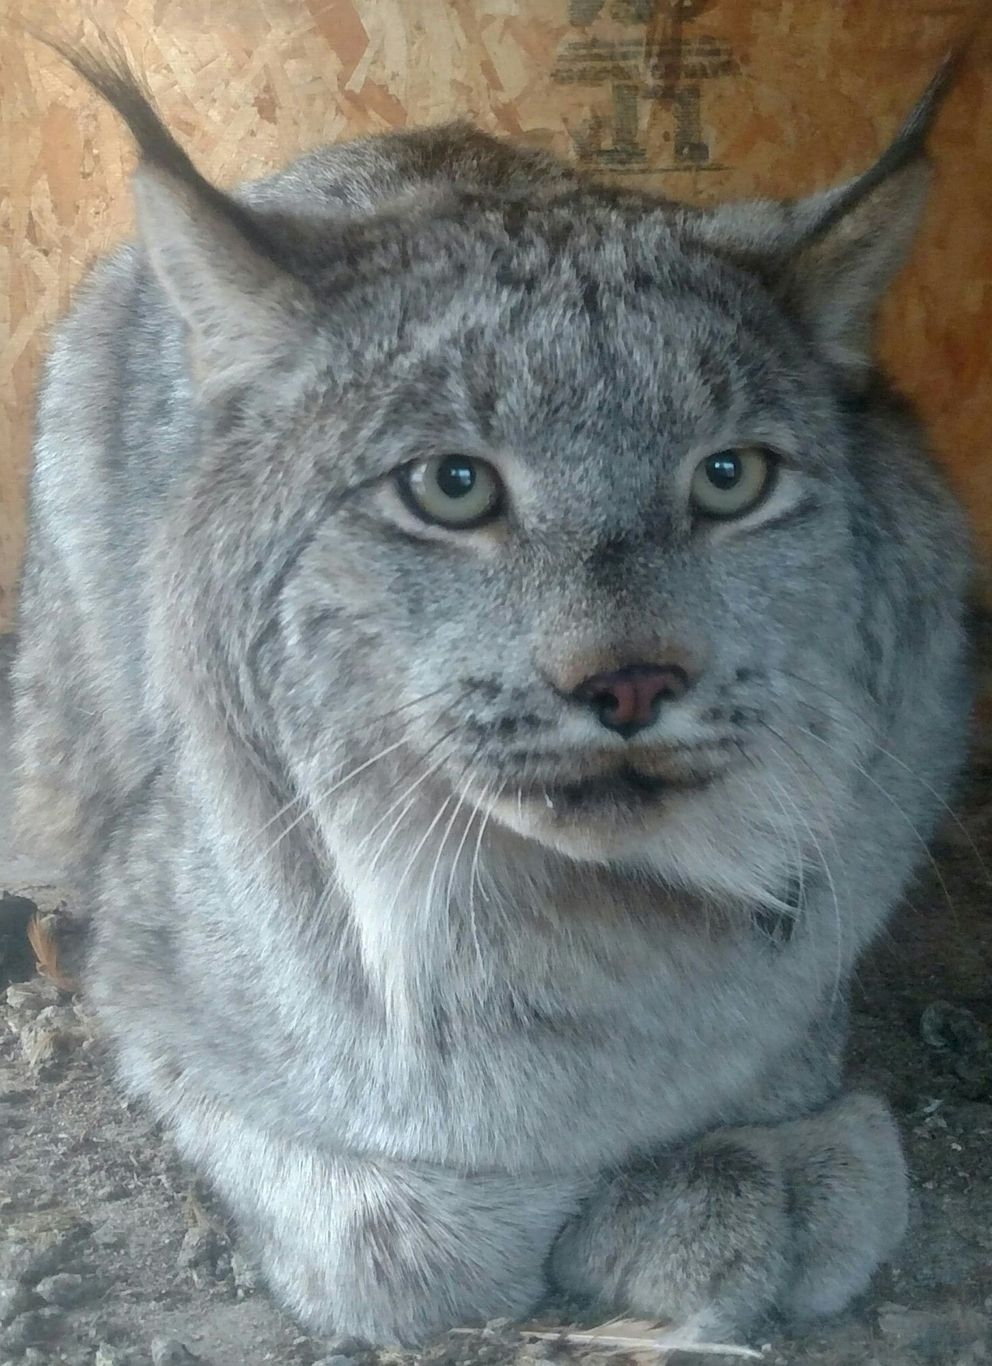 A lynx that a couple in Kenny Lake captured in their chicken house. (Photo courtesy Linda Lohse)